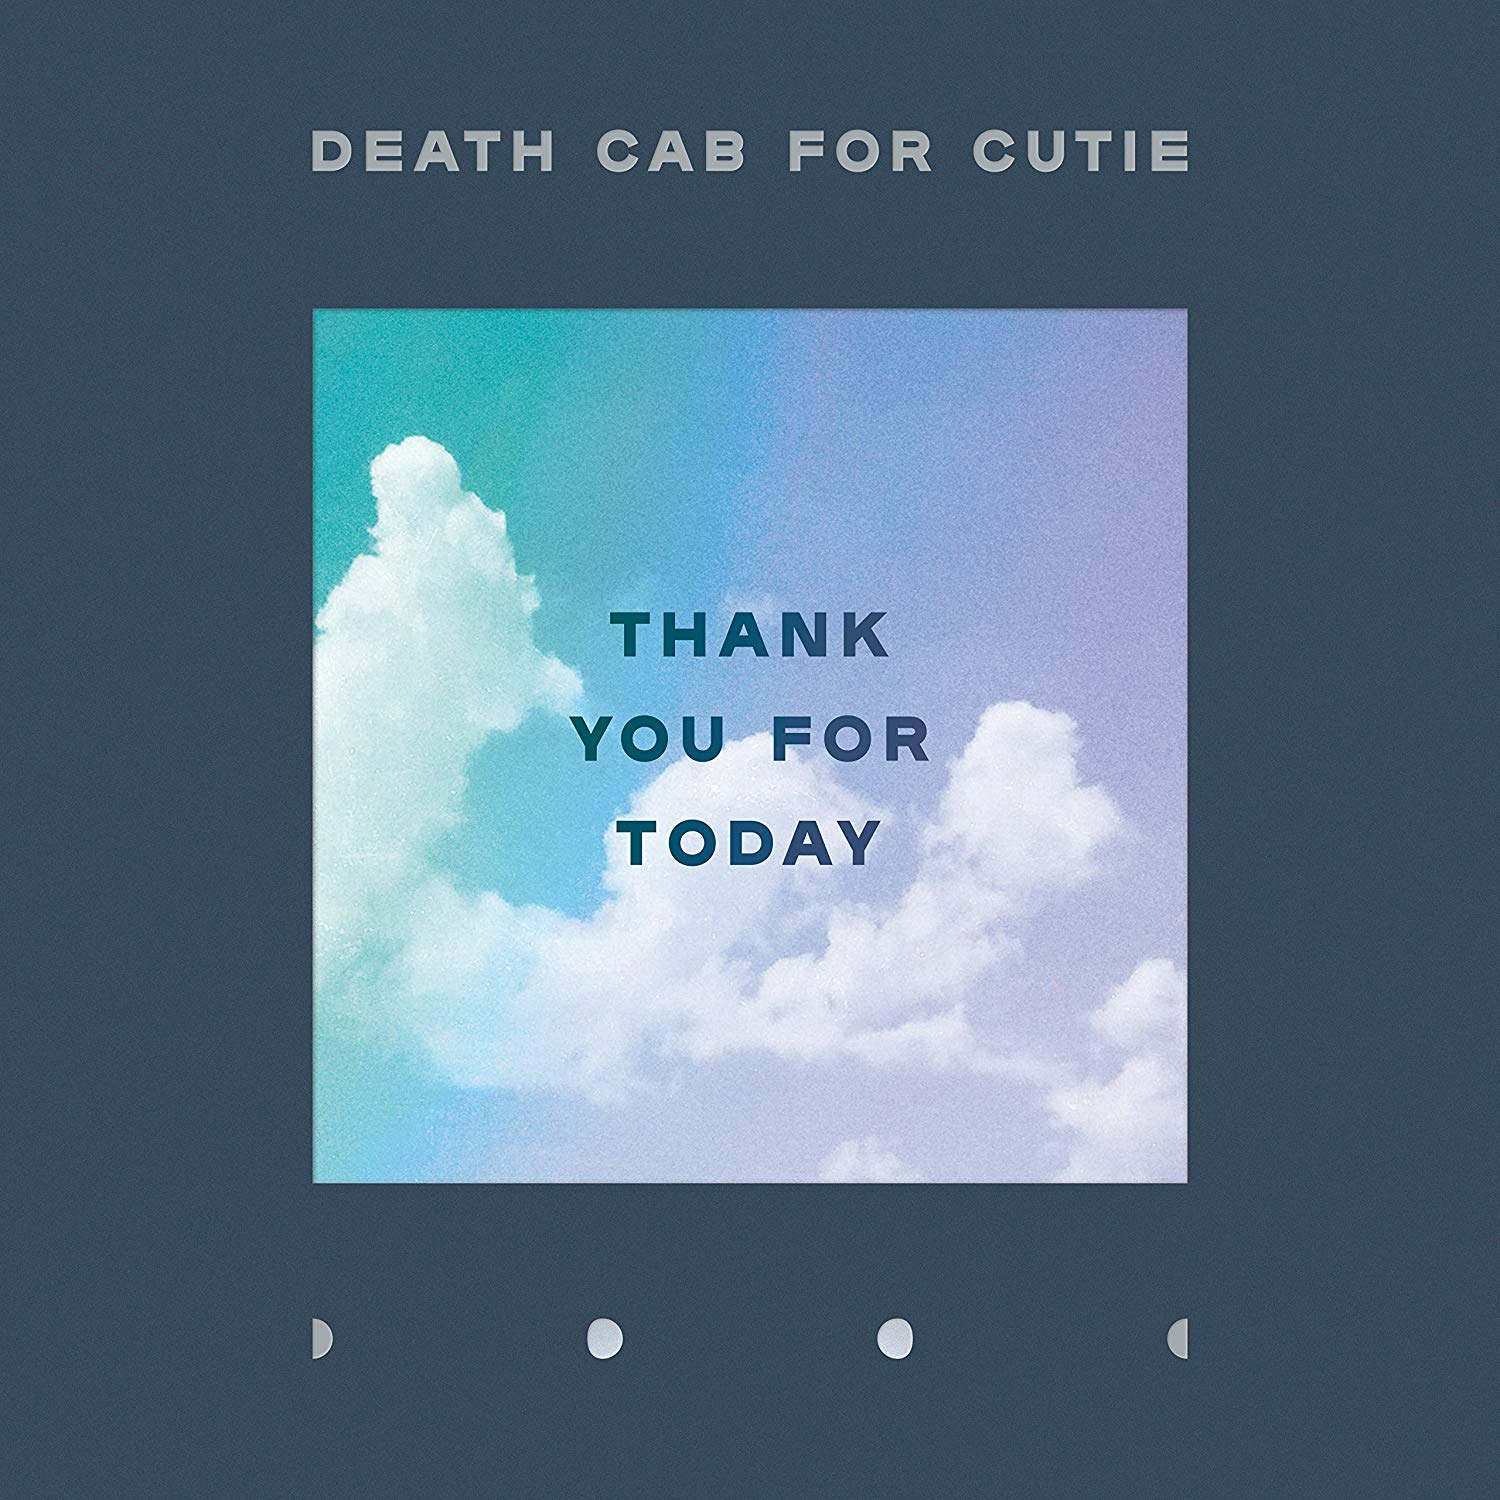 5. Death Cab For Cutie - Thank You For Today - Favorite Song: Your Hurricane